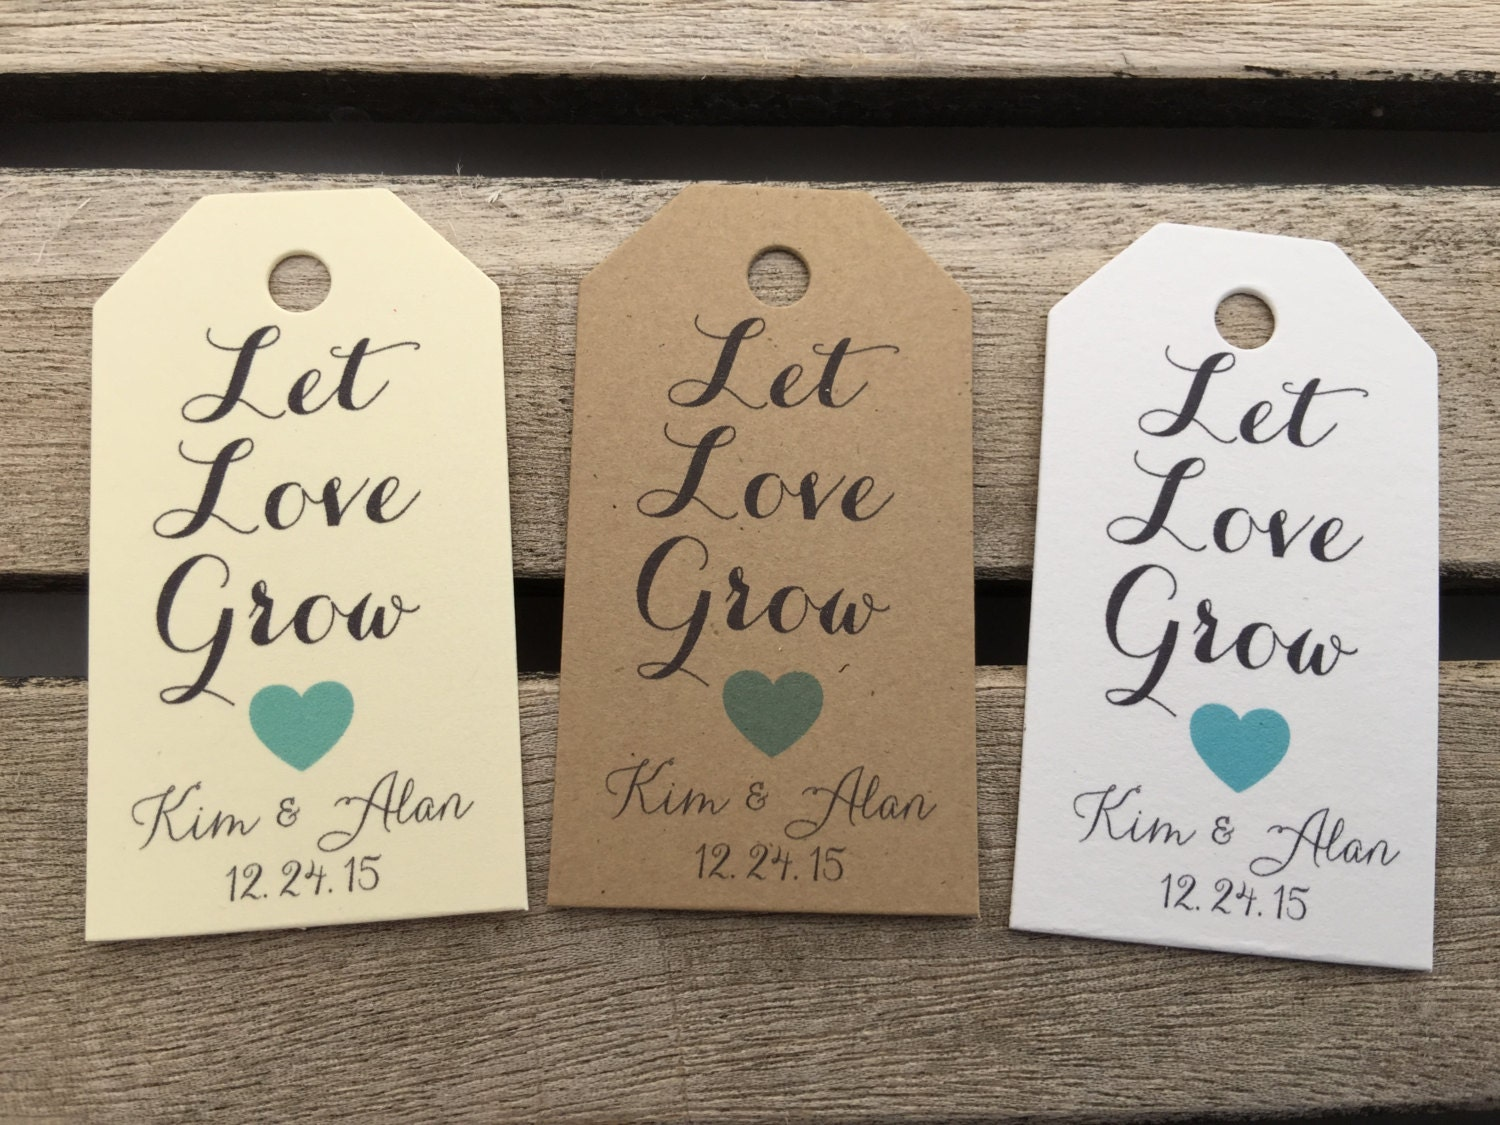 Wedding Favour Gift Tags: Small Wedding Gift Tags Let Love Grow Wedding Favor Tags